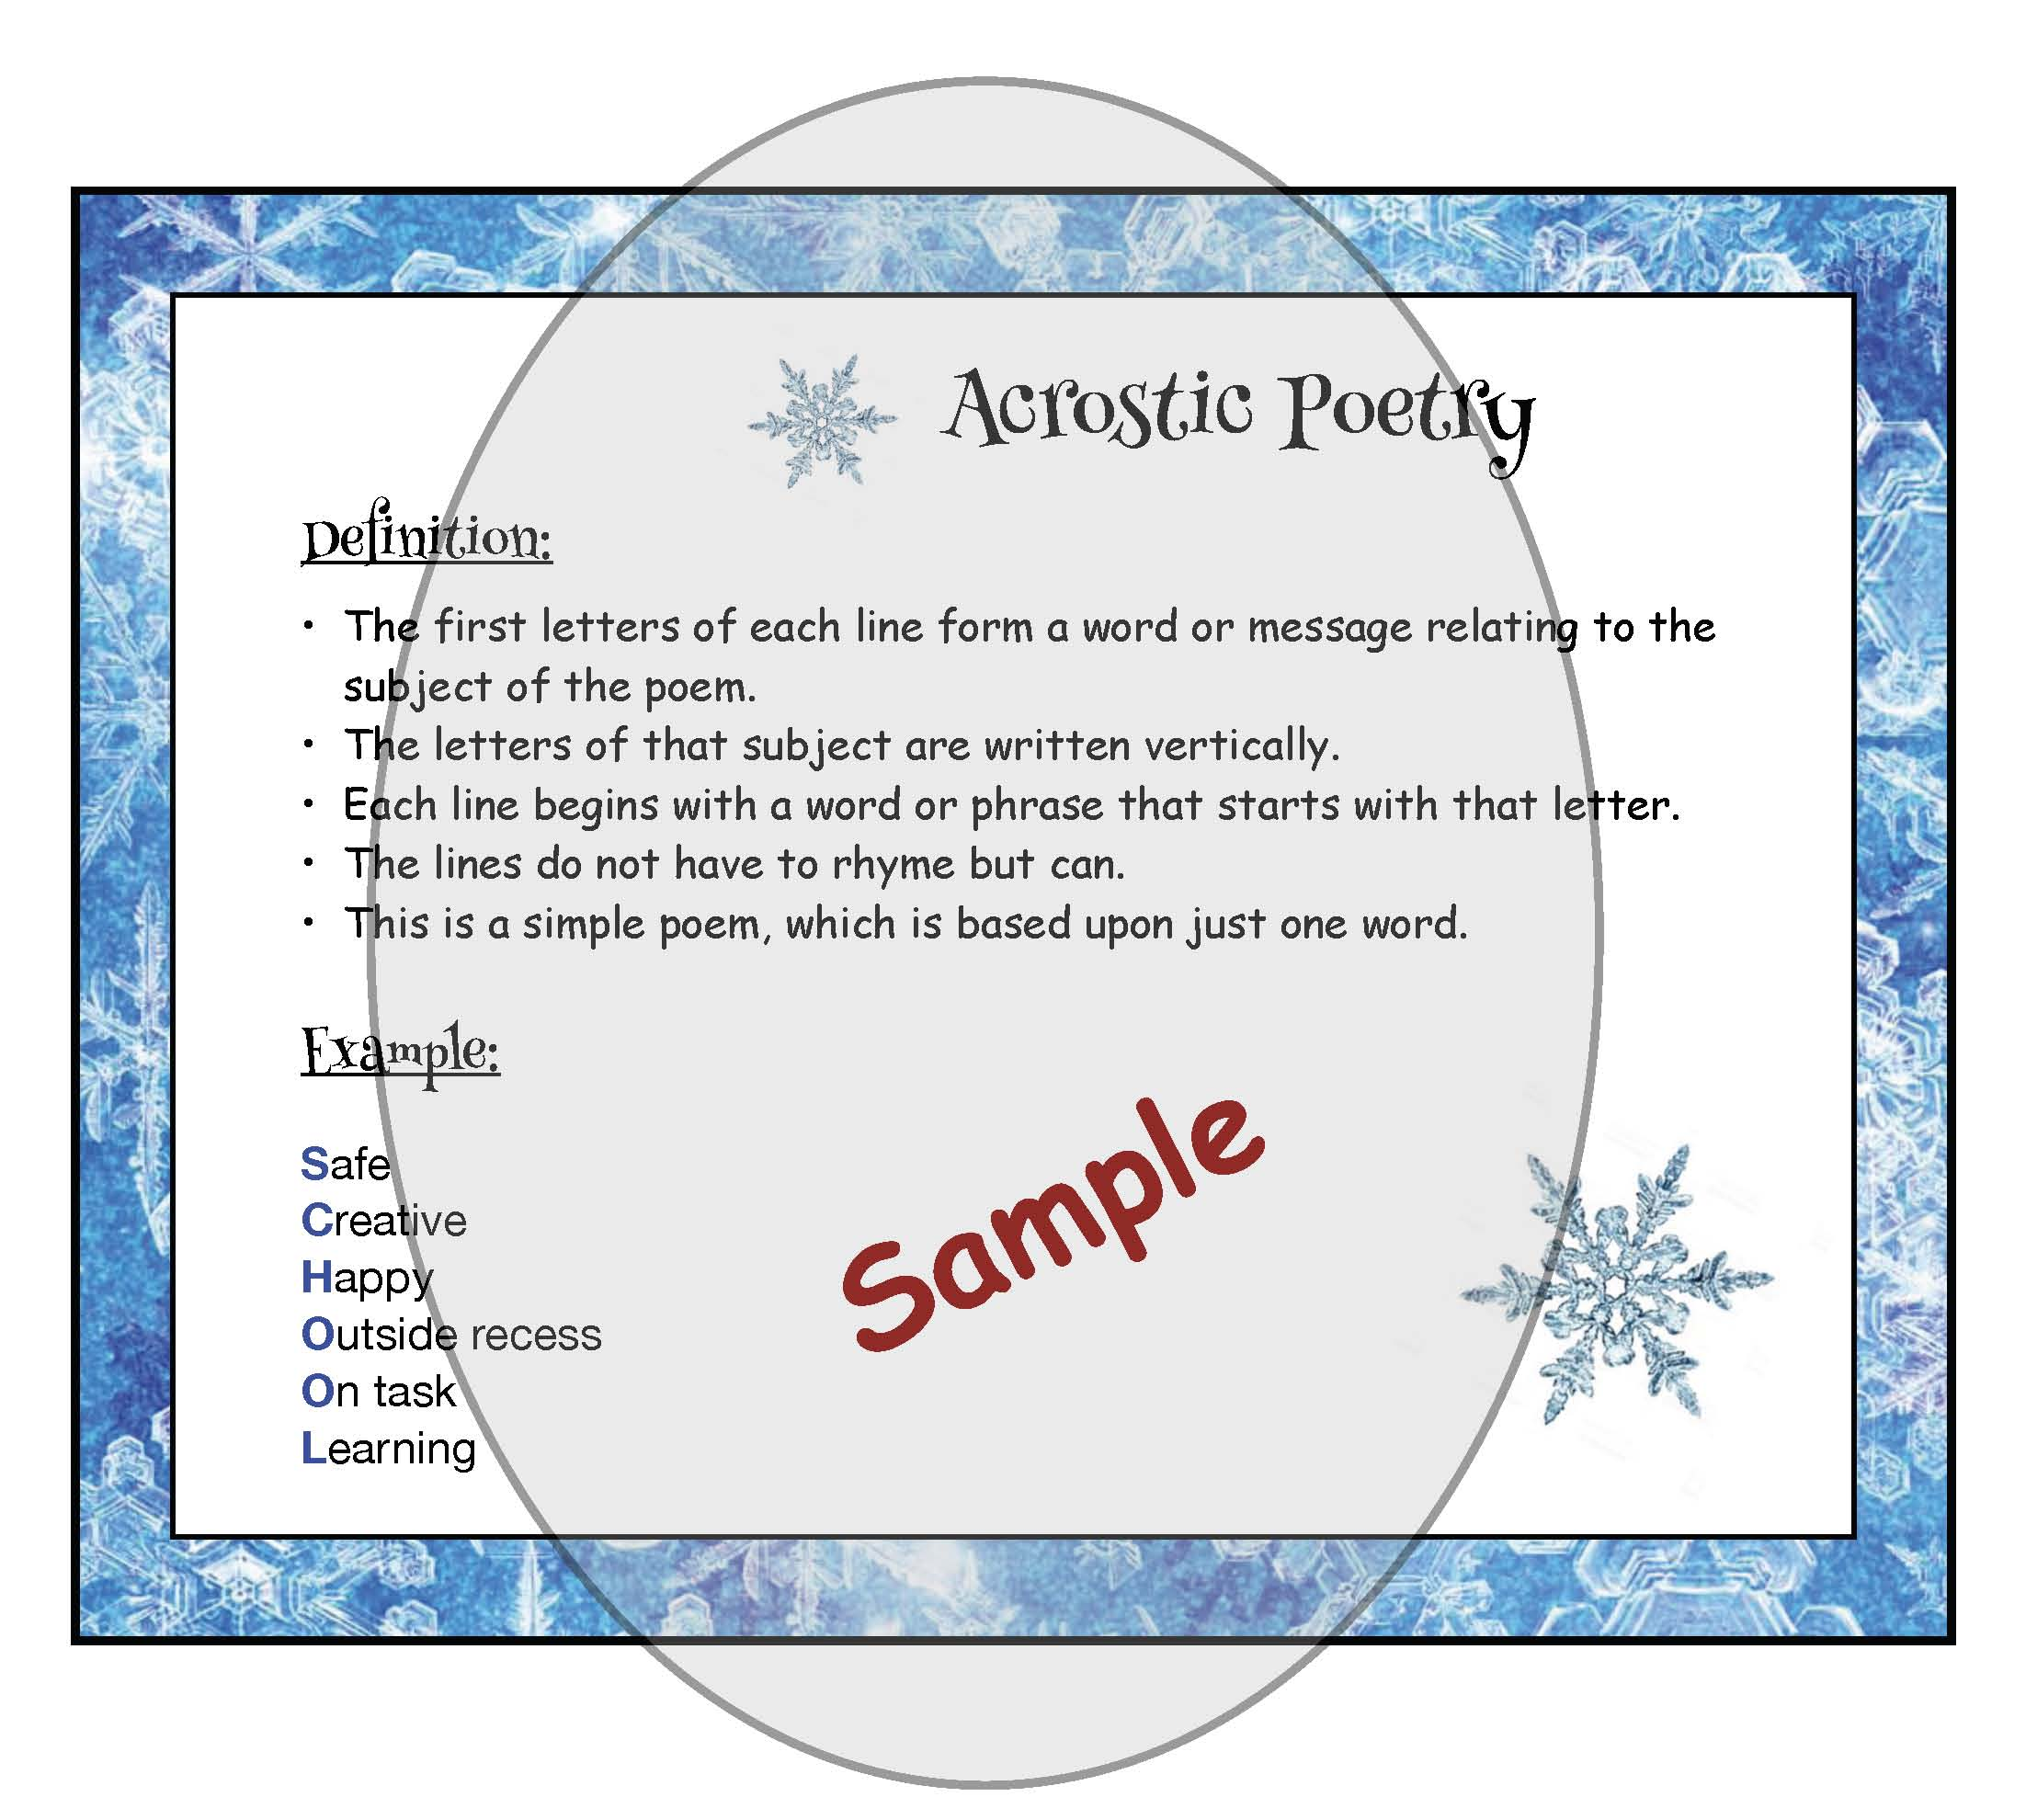 winter crafts, sledding craft, winter bulletin board ideas, acrostic poems, acrostic poetry, sledding poem, winter writing prompts, January bulletin board ideas, snow crafts